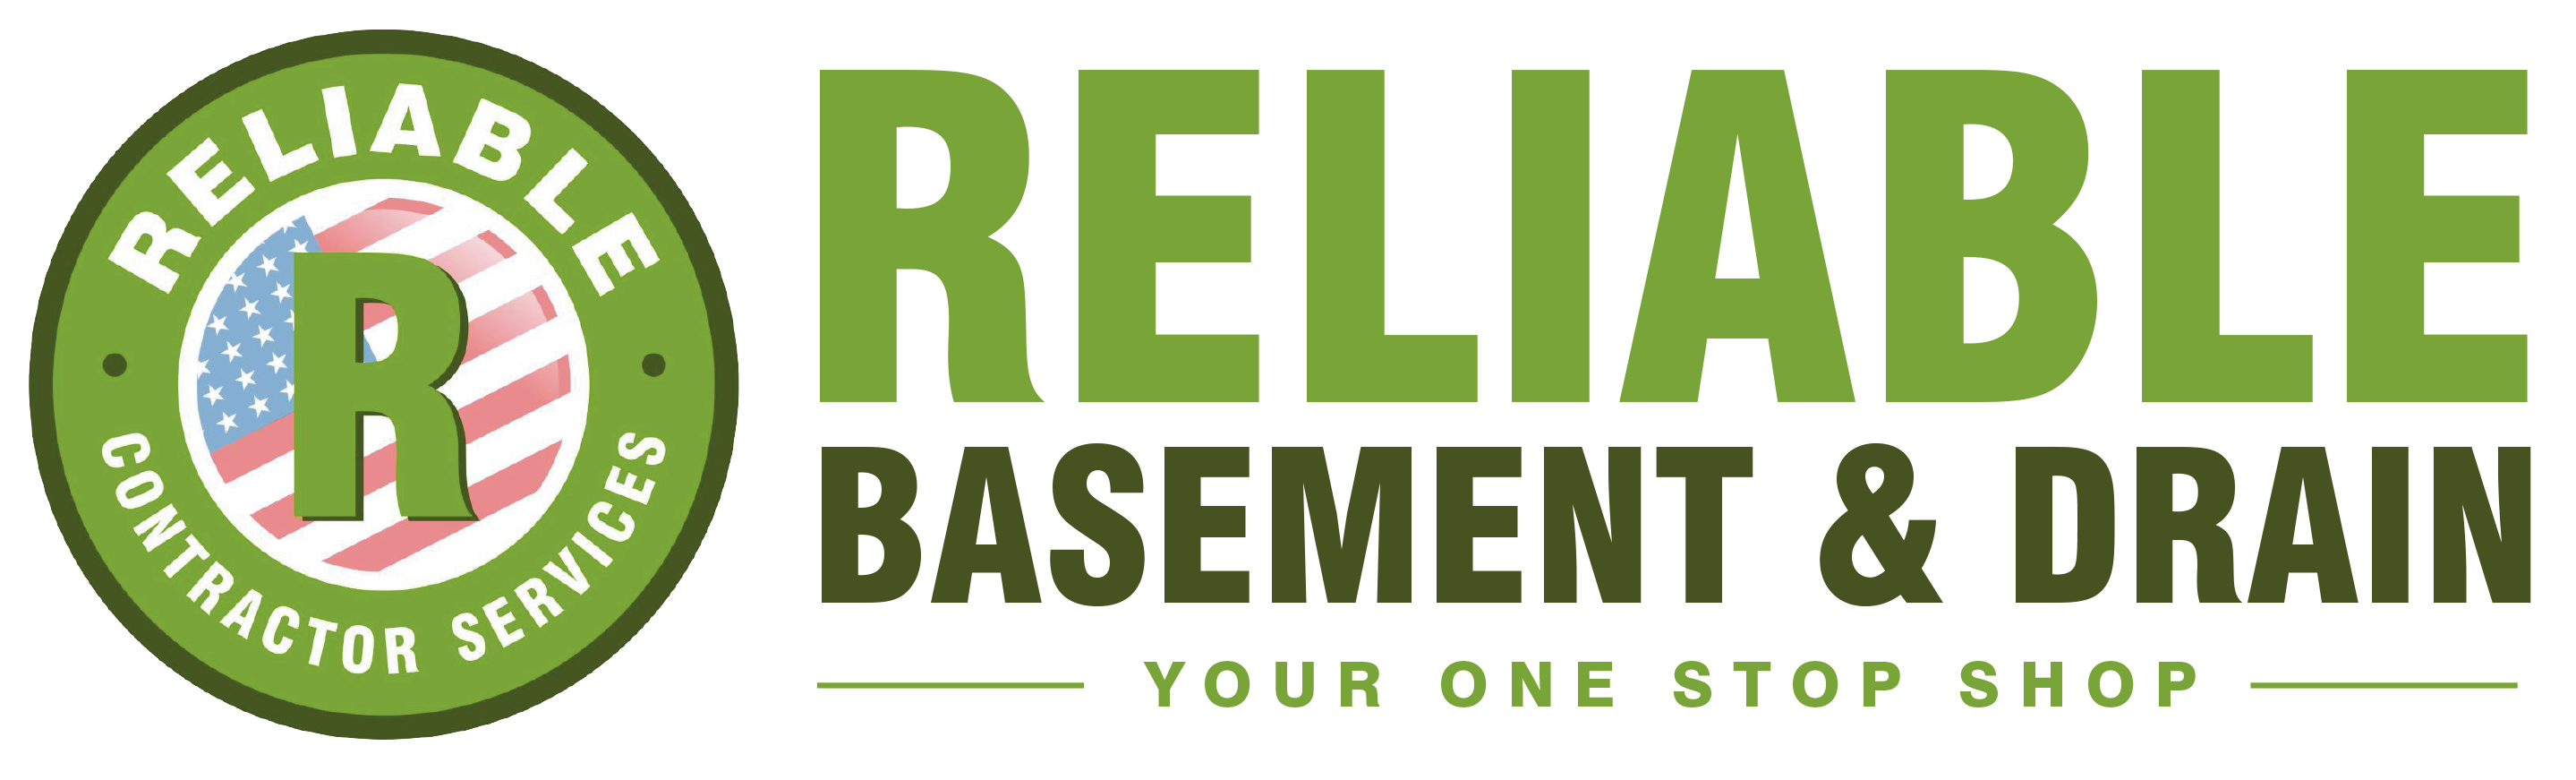 Reliable_BasementDrain_logo_XL